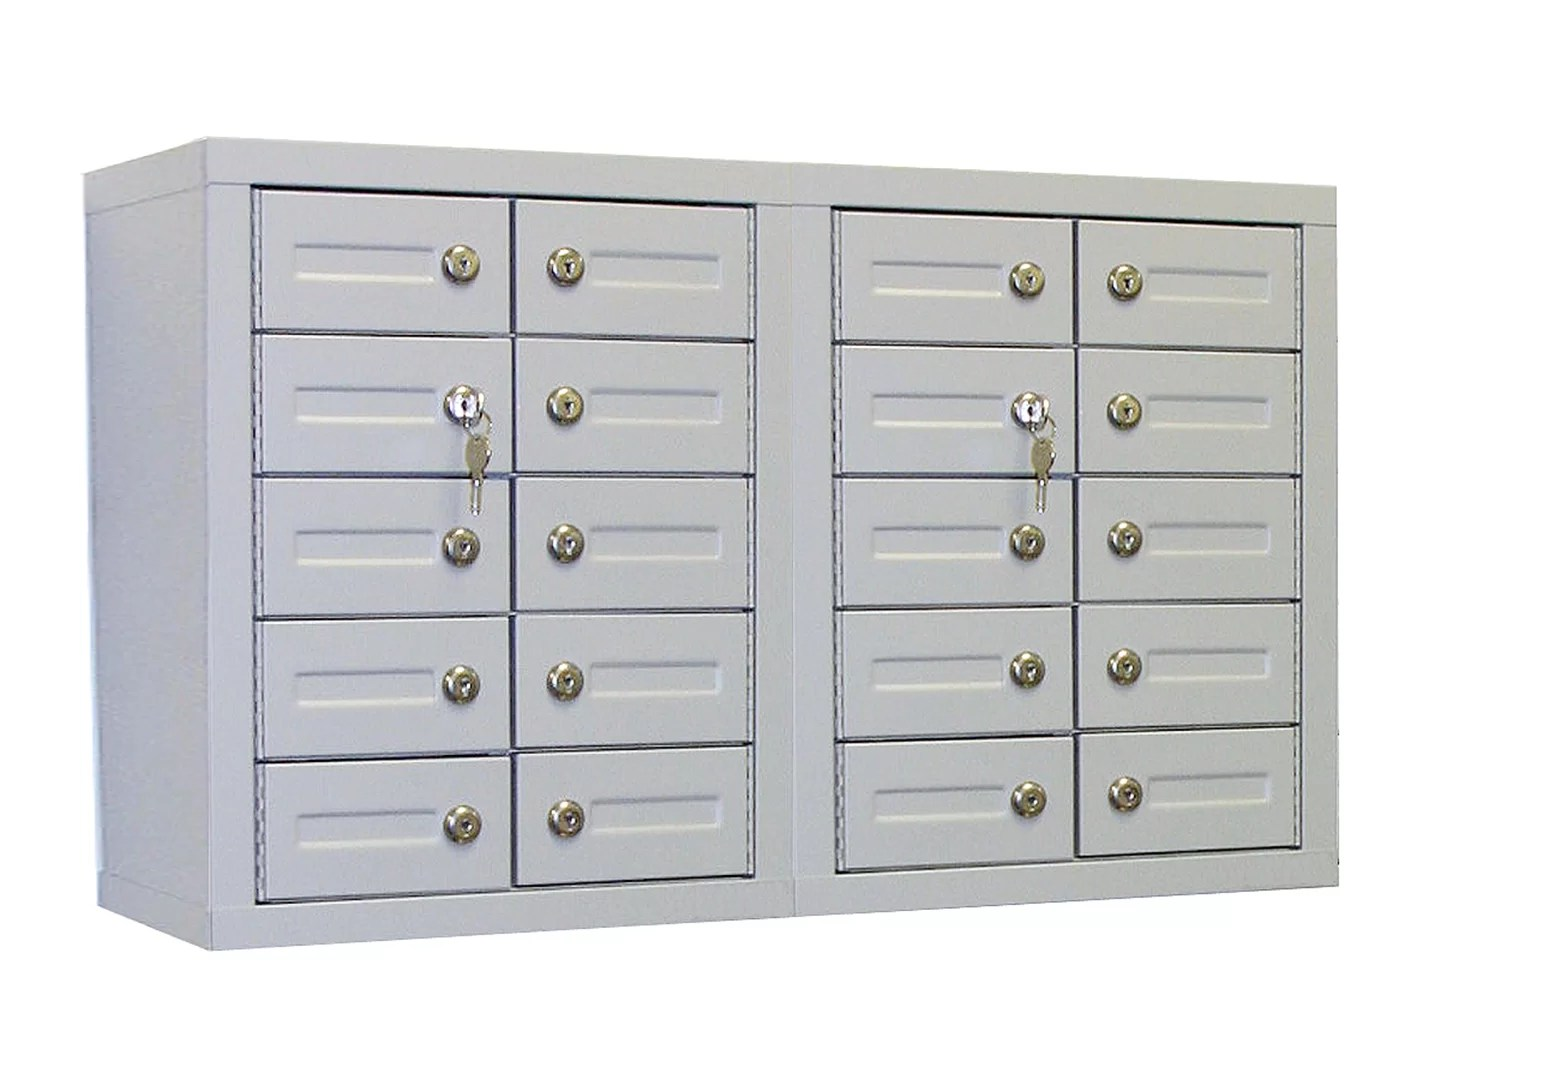 Details About Symple Stuff Whaley Locking Storage Cabinet